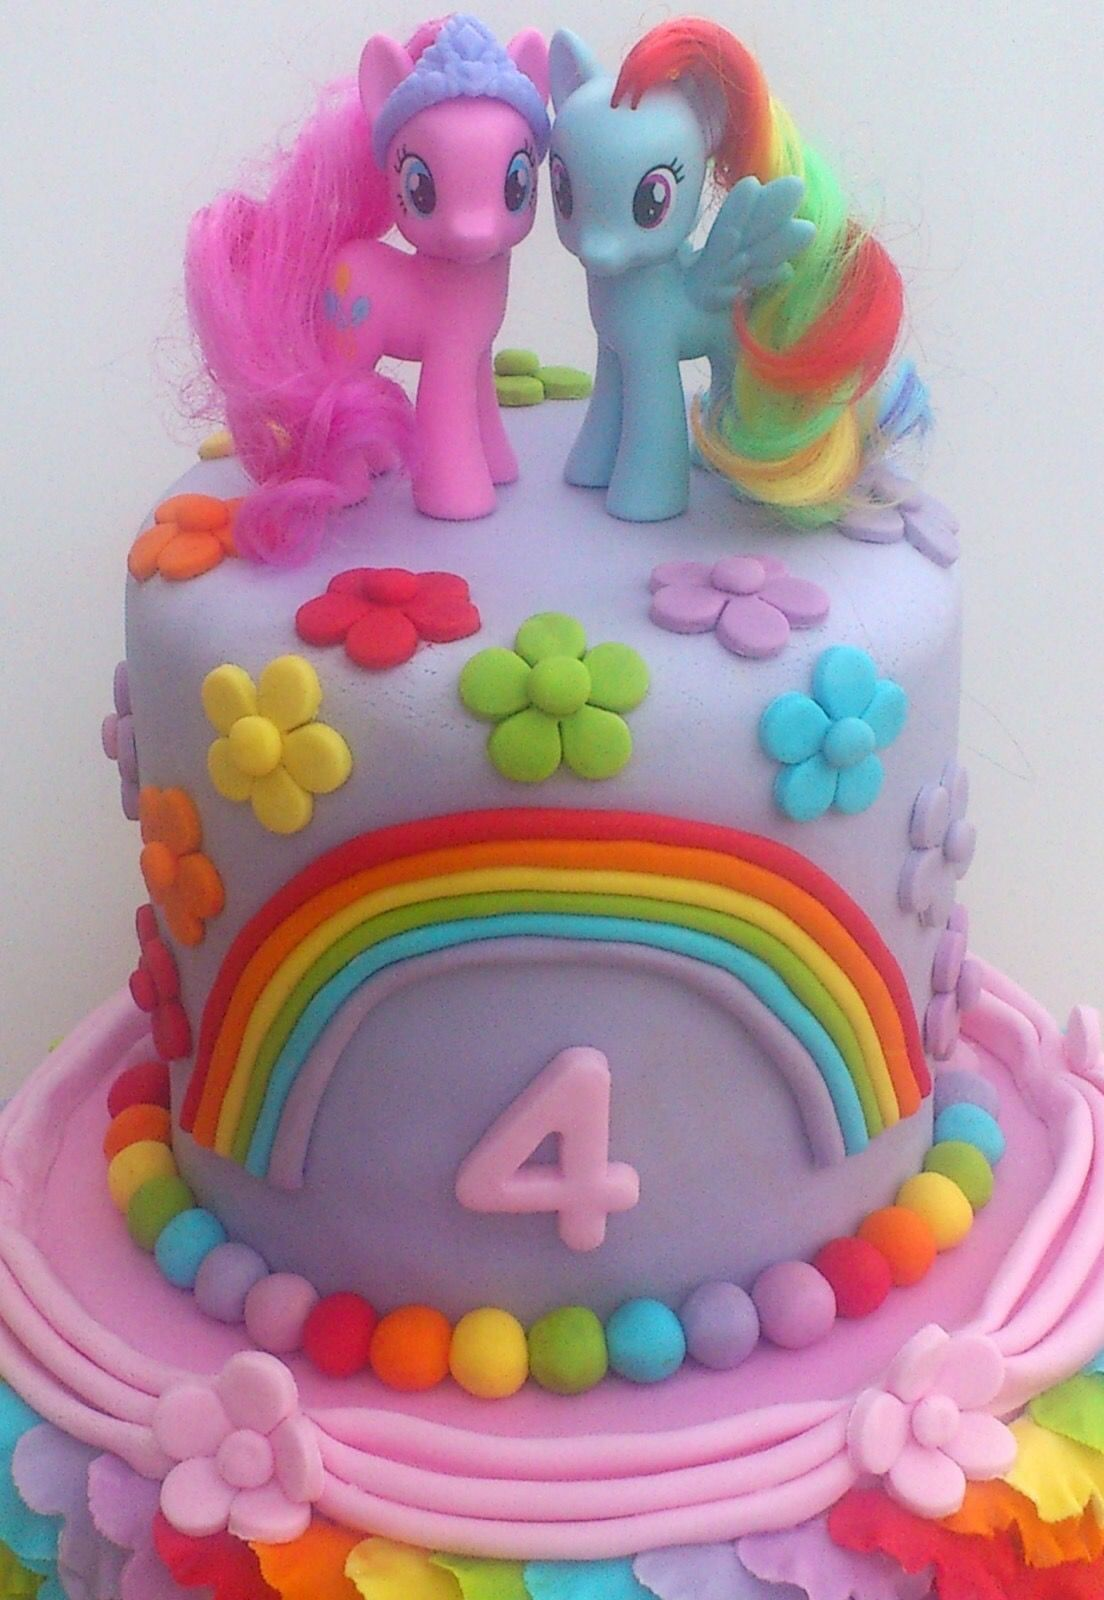 Pin By Mandy Fourie On Addison S Birthday Cake Ideas